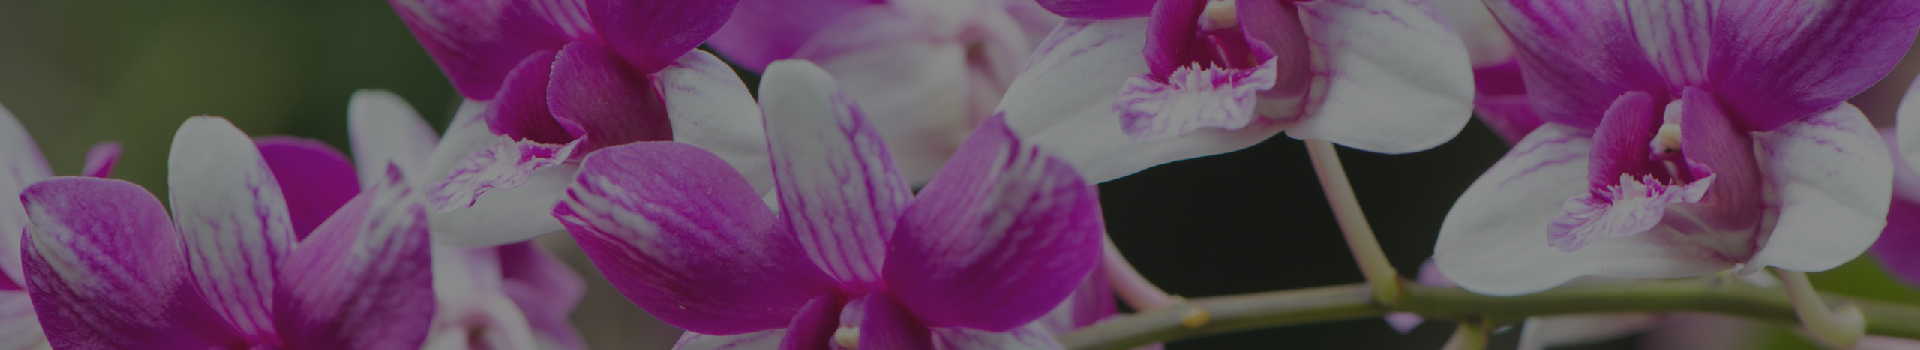 orchids banner